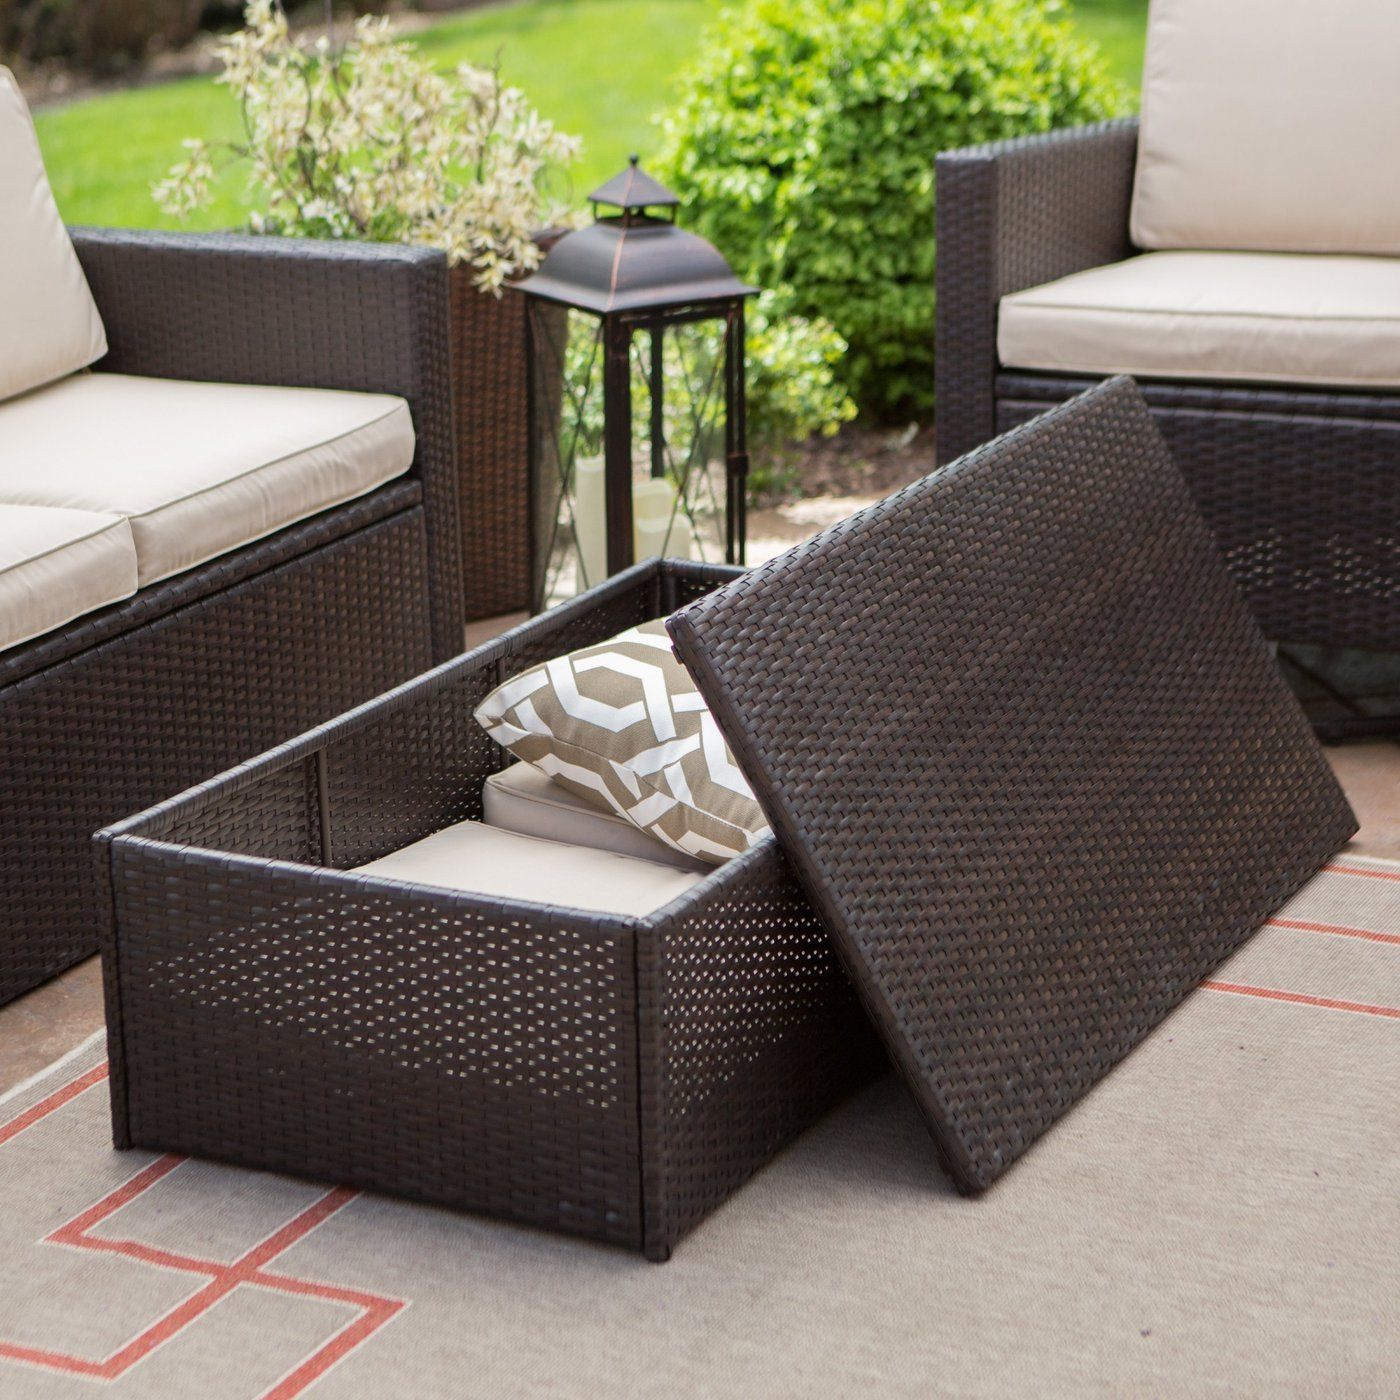 tkc laguna outdoor wicker storage coffee table caramel patio rattan side end cube furniture ashley console quirky bedside tables hairpin legs with basket drawers brown leather